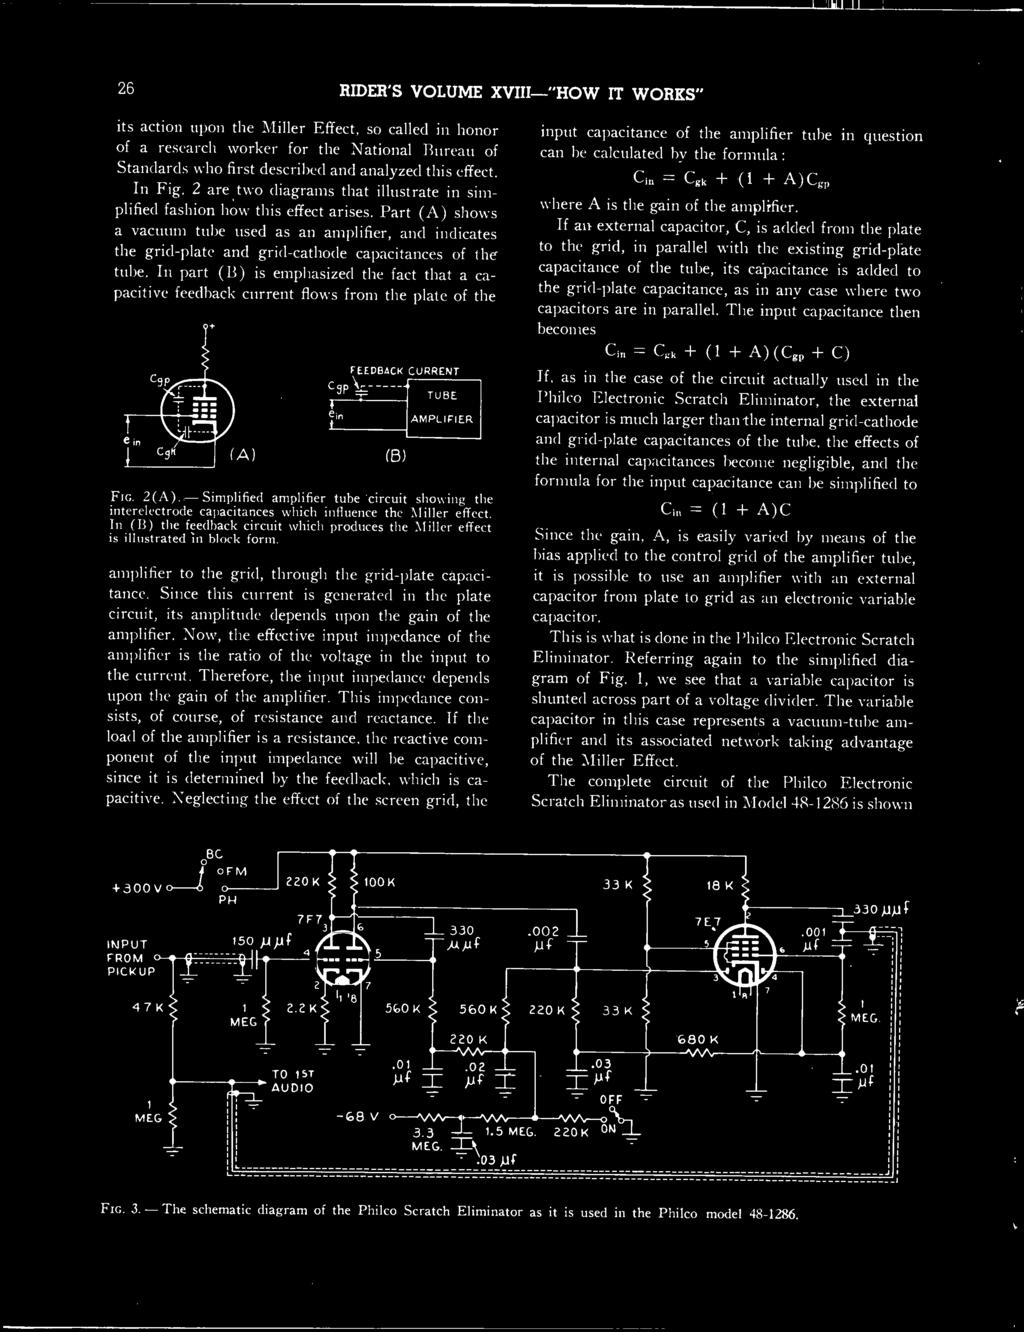 Riders Volume Xviii How It Works And Complete Index For Volumes Xvi Rectifier Circuit Tube Amp Tubeamplifier Audiocircuit Part A Shows Vacuum Used As An Amplifier Indicates The